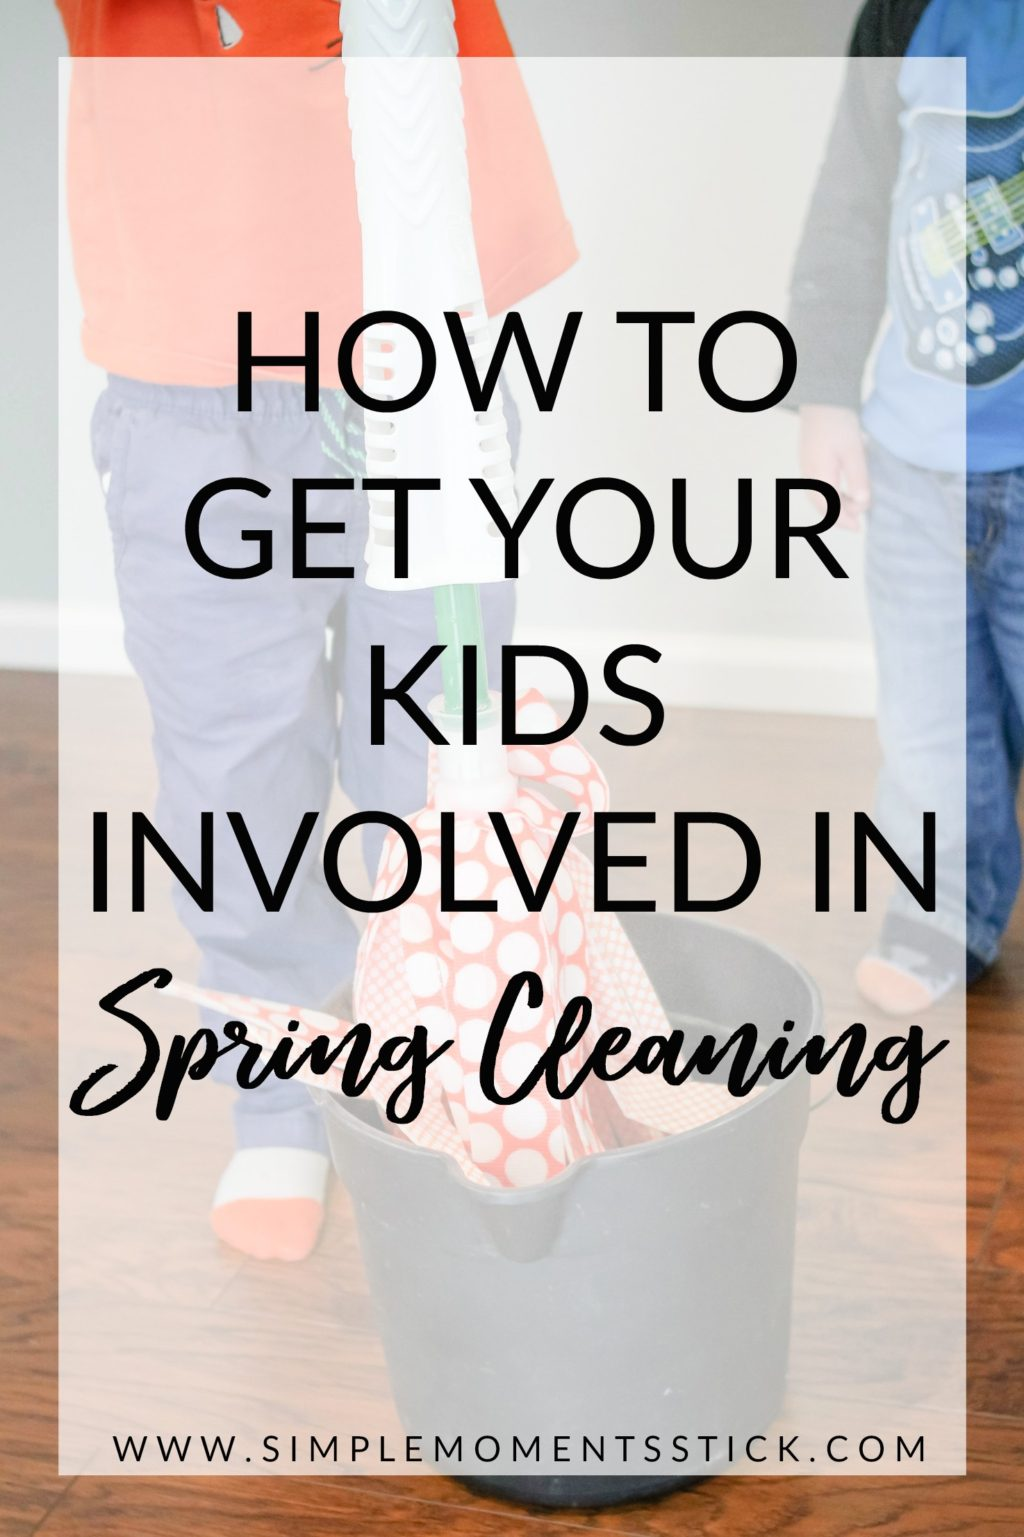 Ever wonder how to get your kids involved in spring cleaning? This post has your answers!